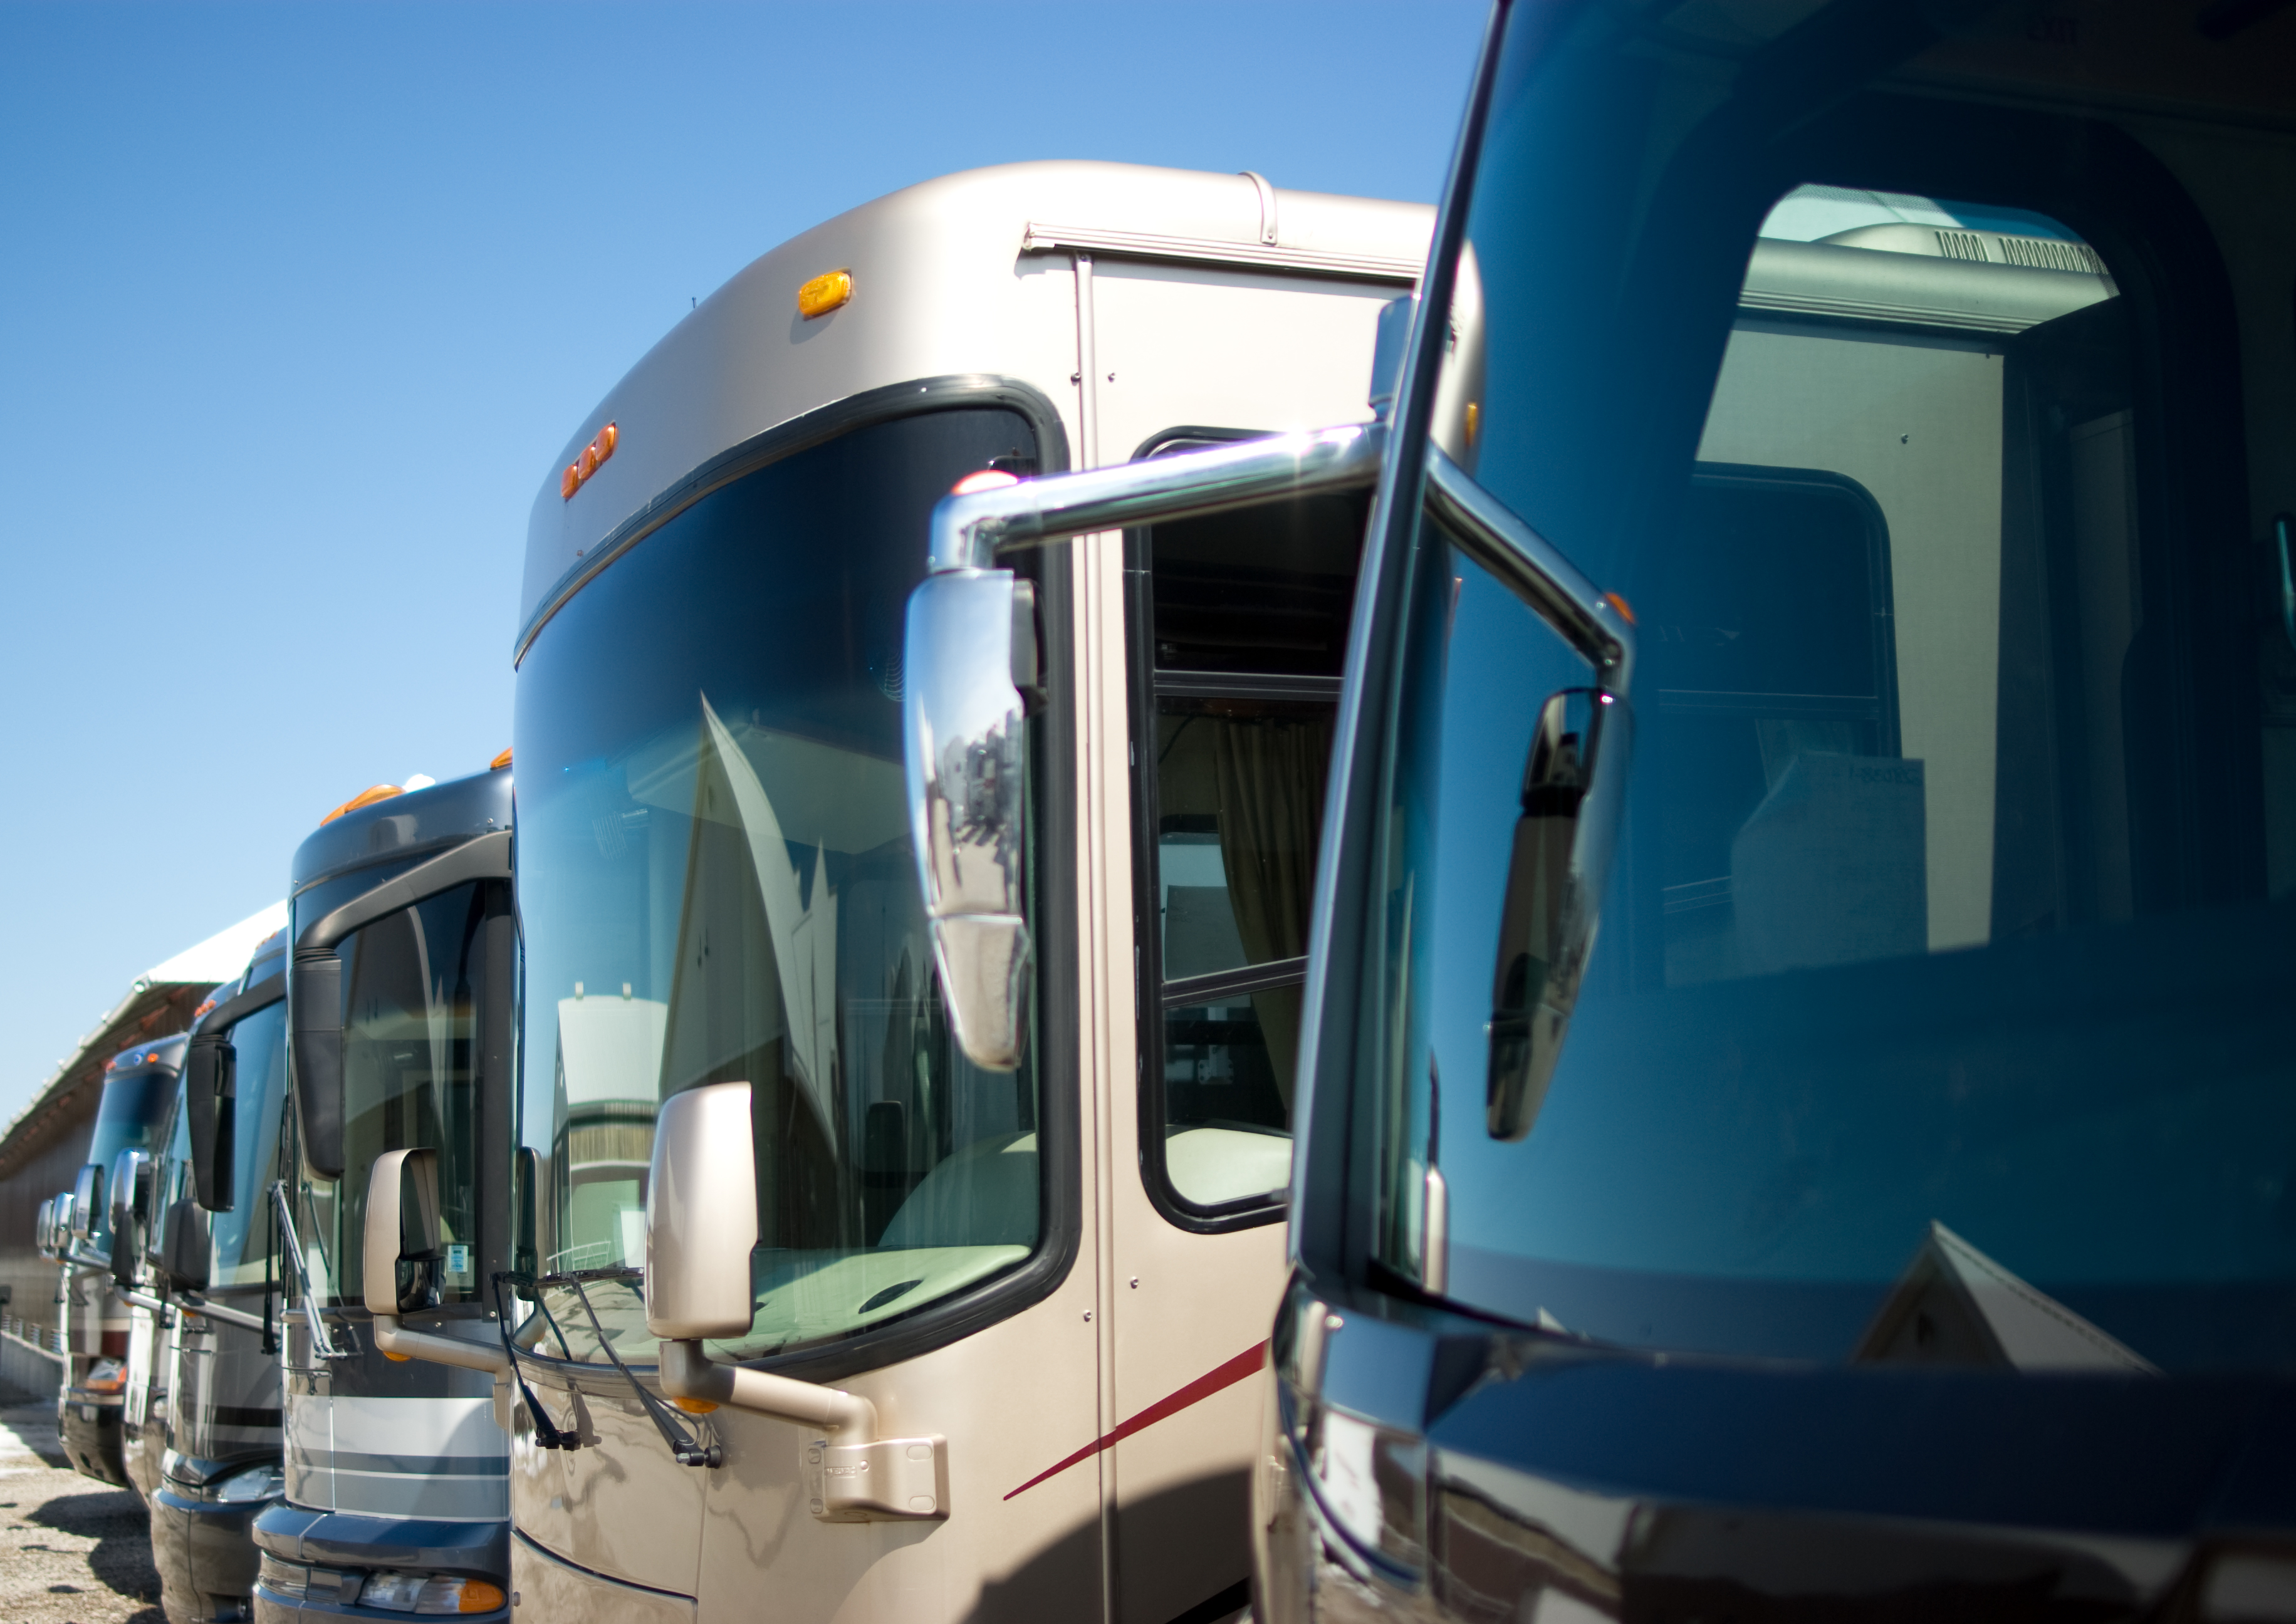 Pros and Cons of Motorhomes Vs Trailers